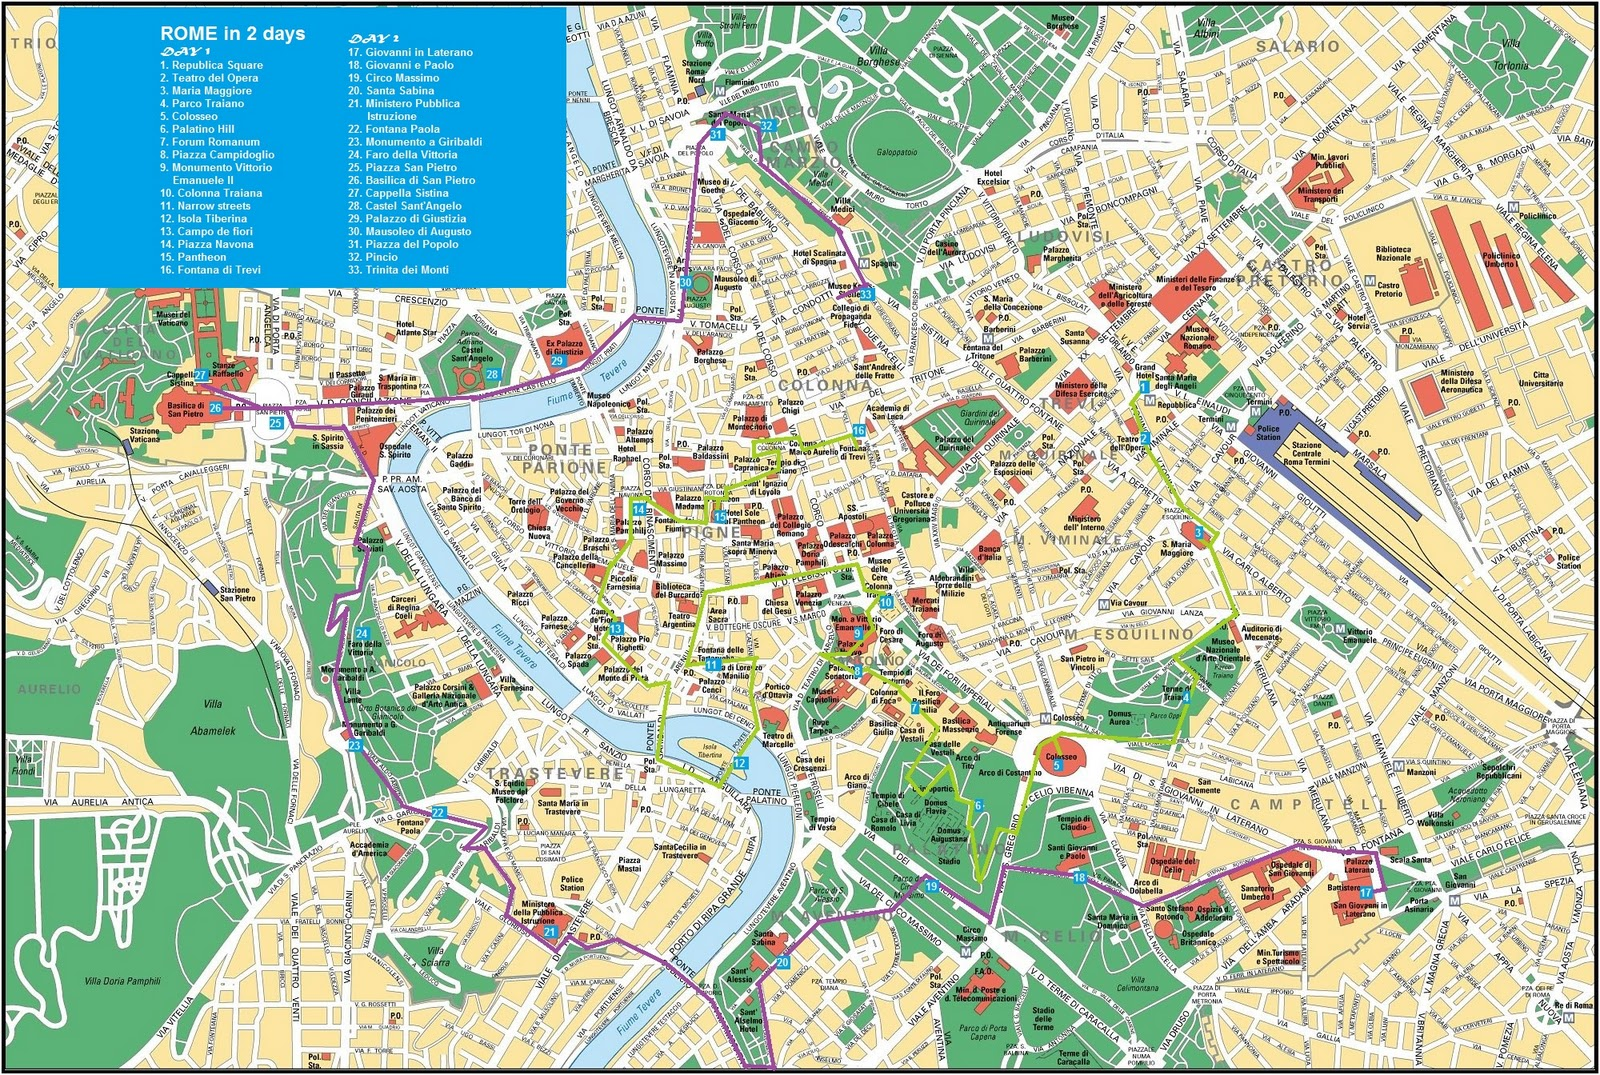 top sites in rome map metro – Rome Map Of Tourist Attractions